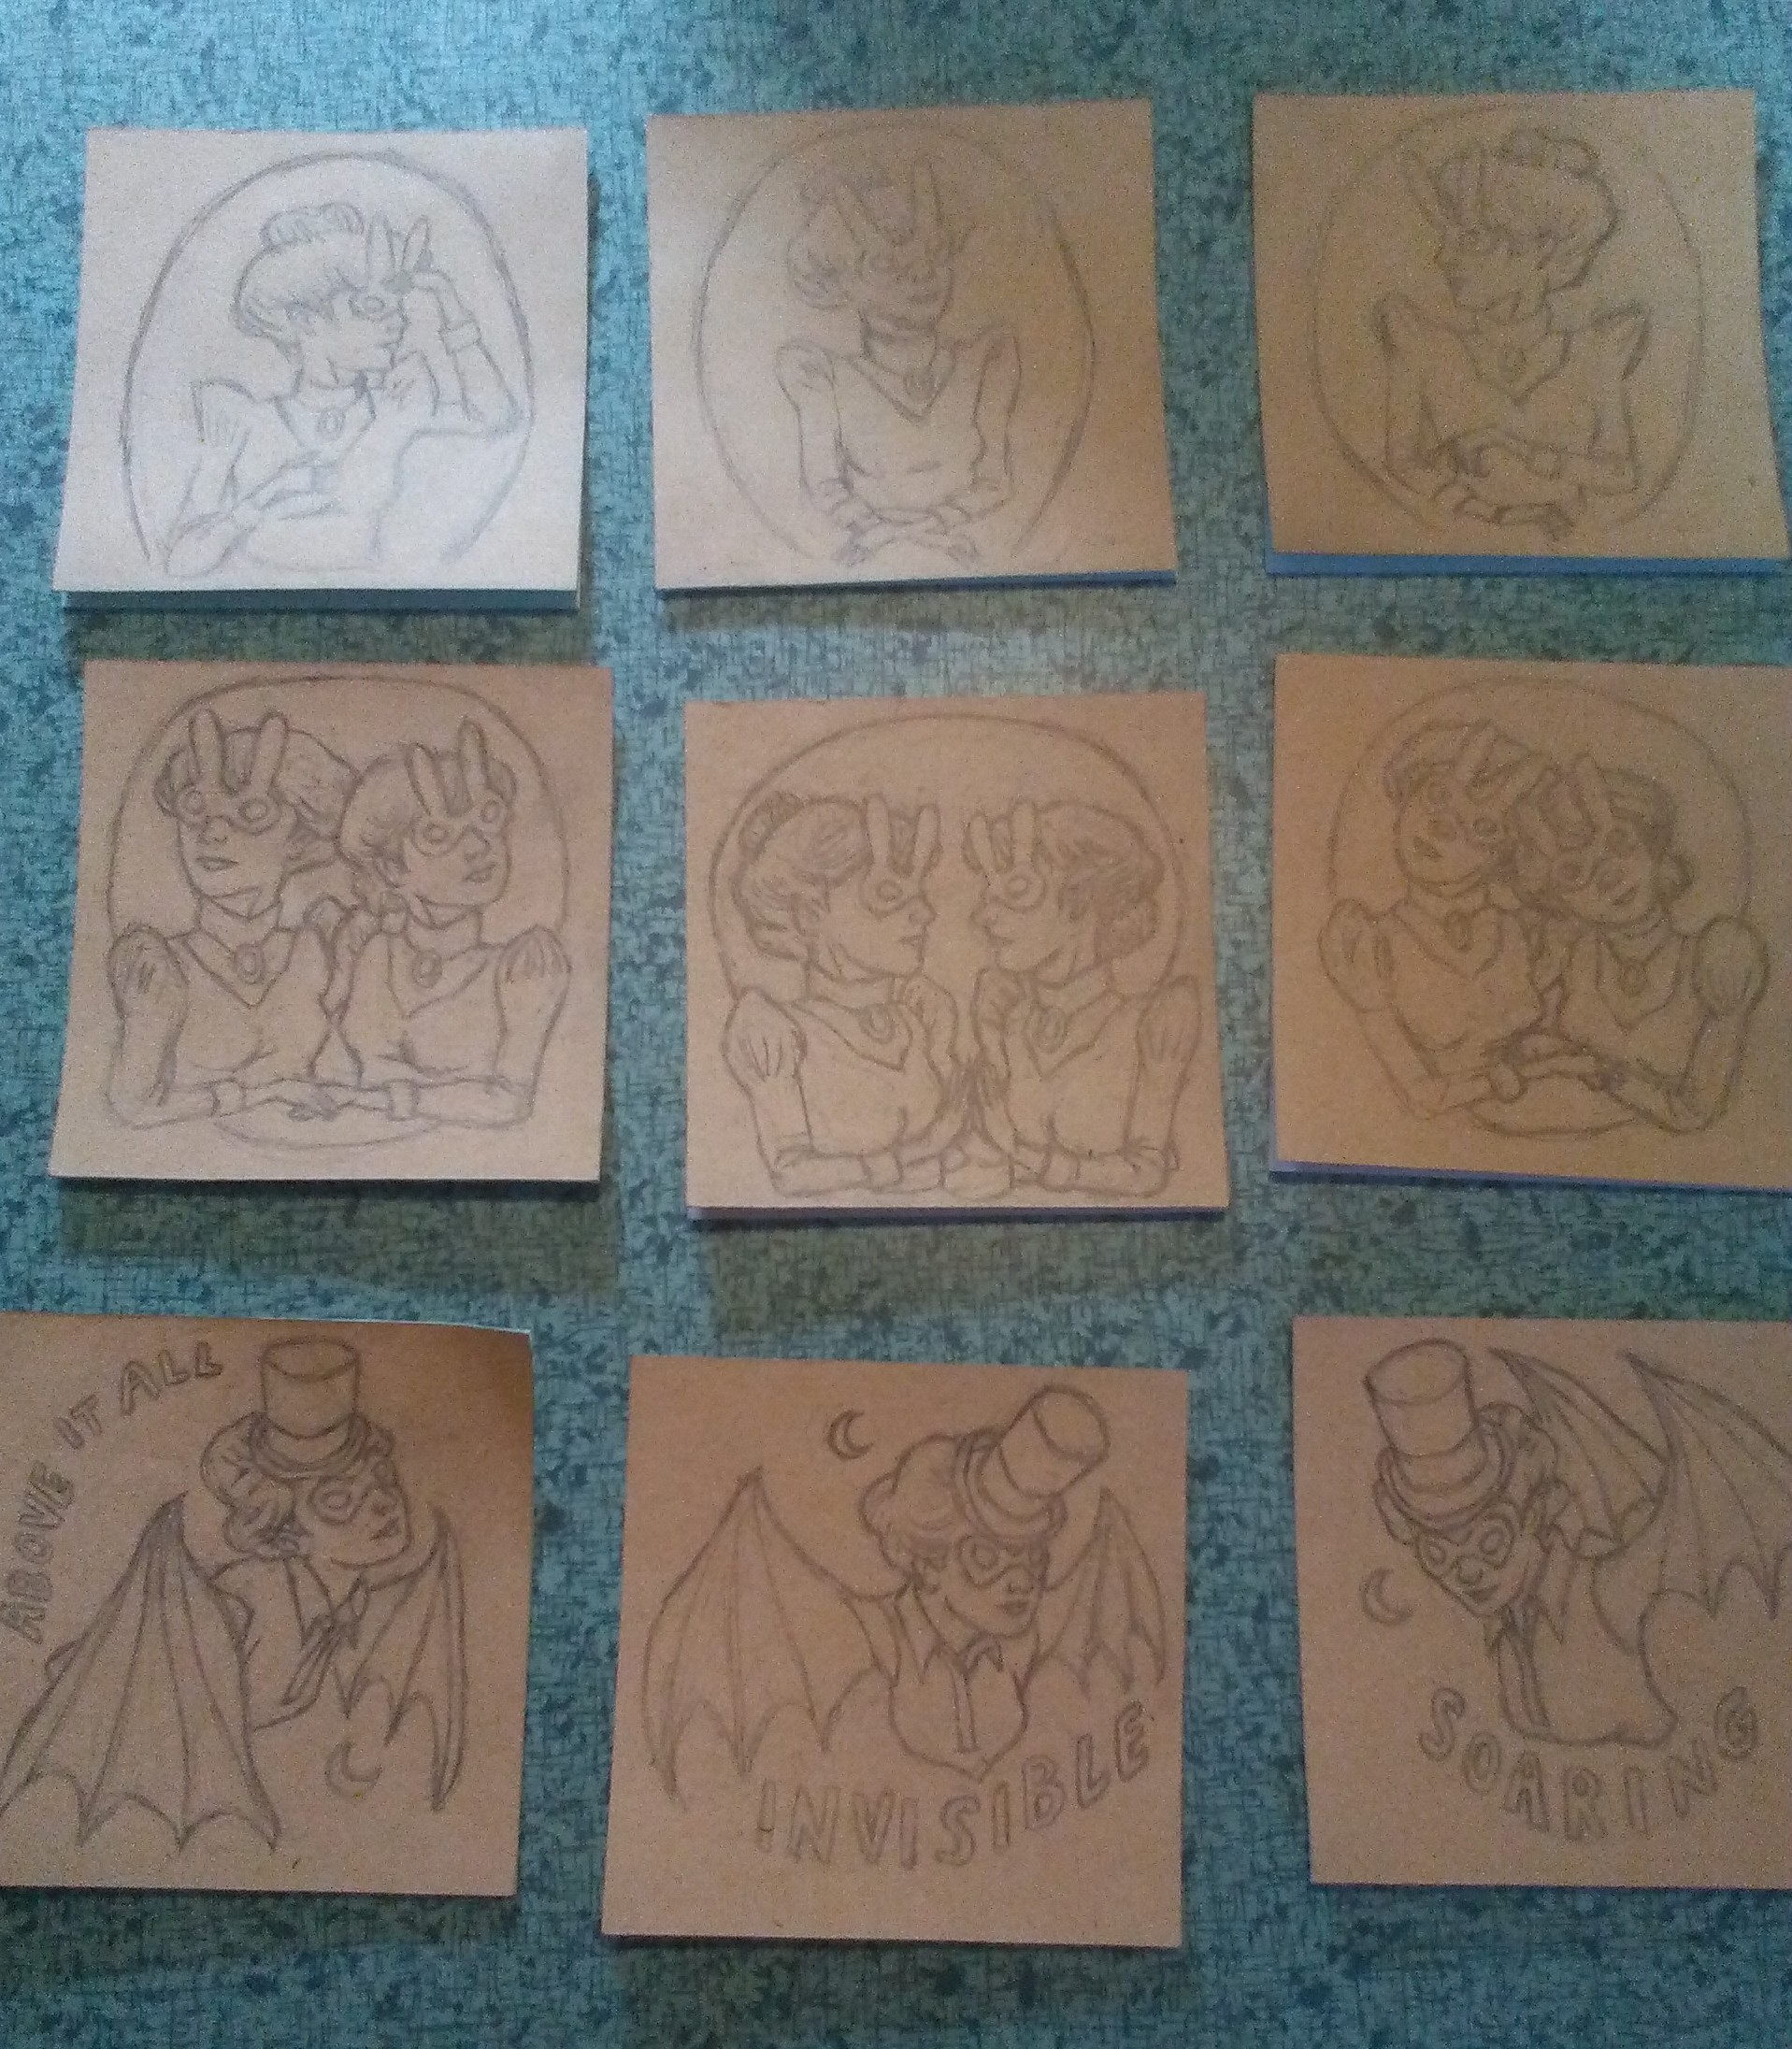 Nine little post-it drawings that I will color and send to the Giant Robot's annual Post-it Art Show in December.